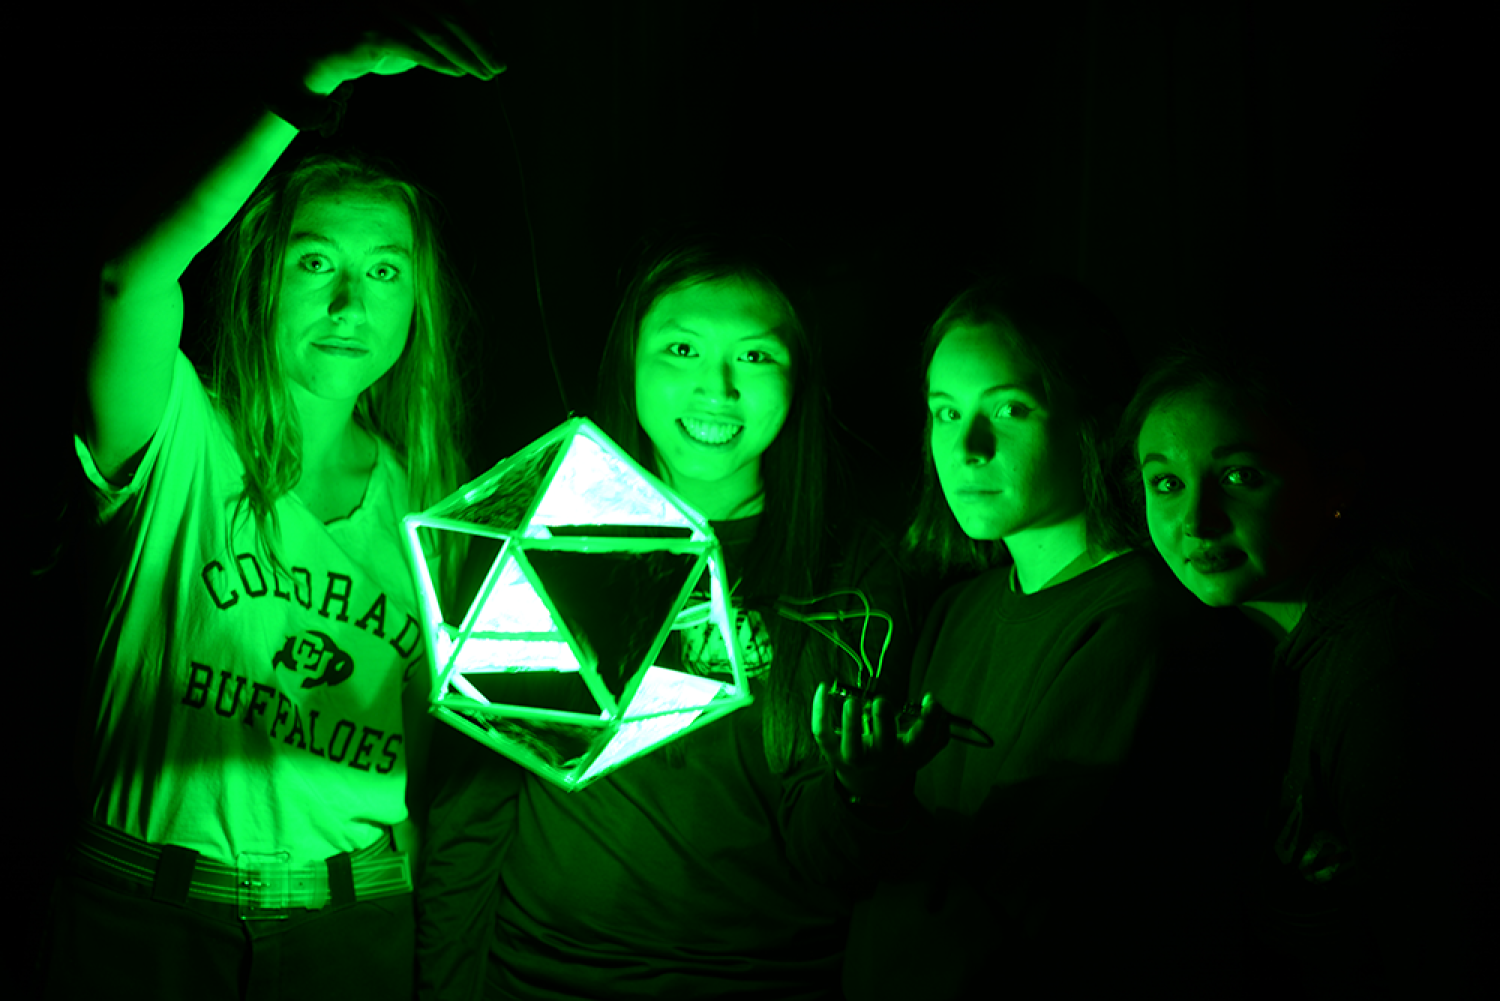 Students holding green lamp